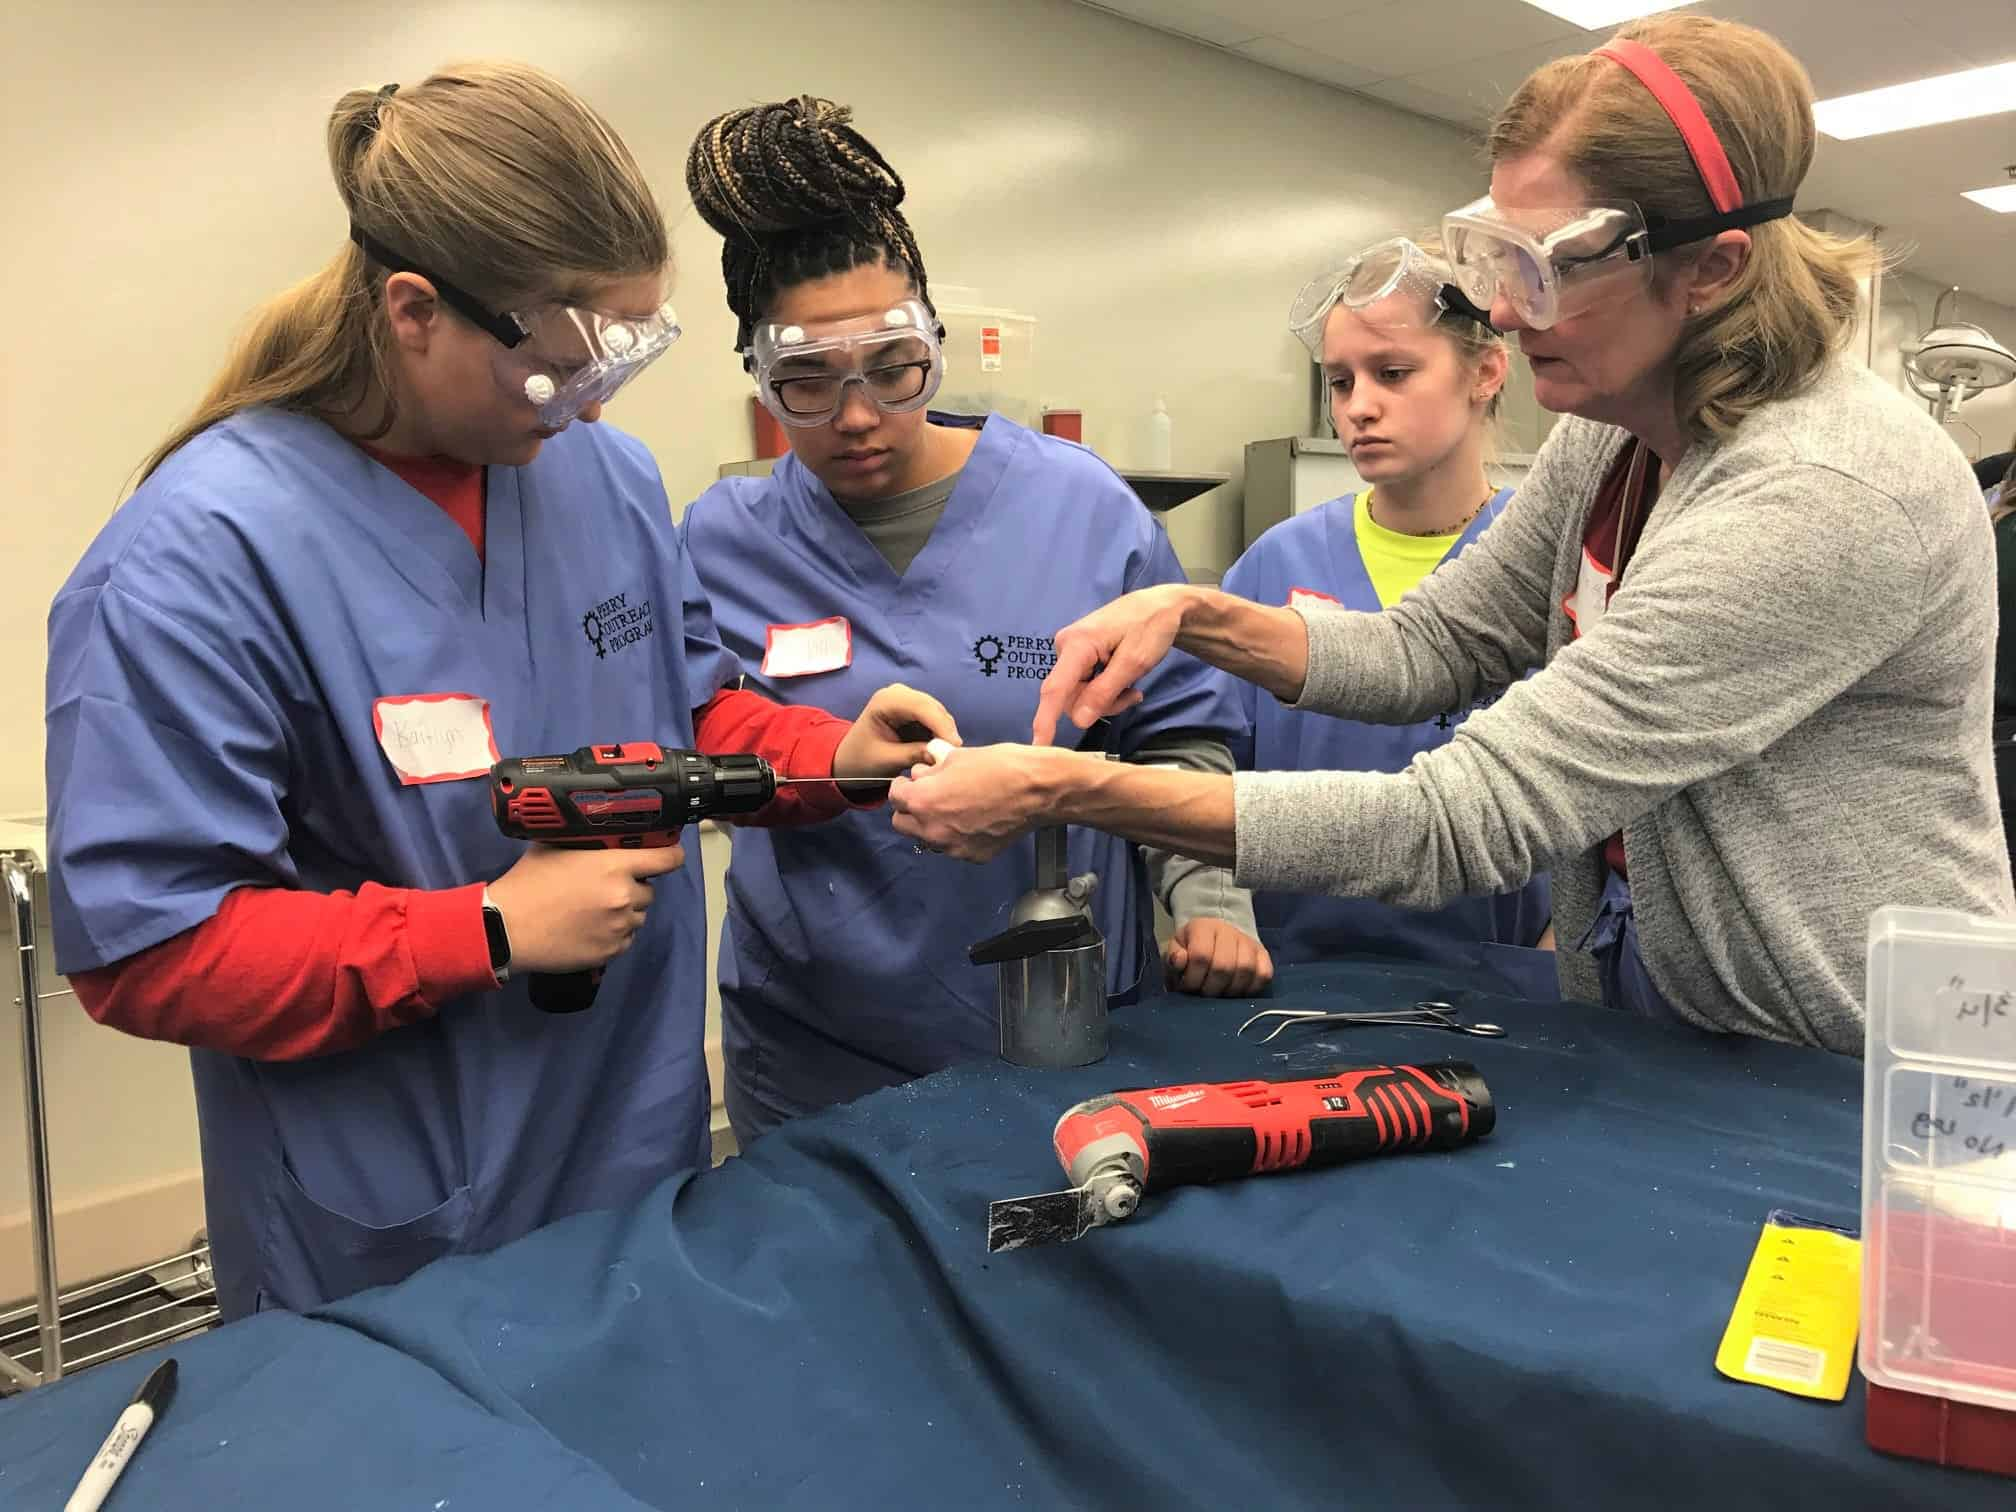 Laurie Hughes, M.D., (right) a retired orthopaedic surgeon, assists female high school students as they make repairs to simulated bones and joints.